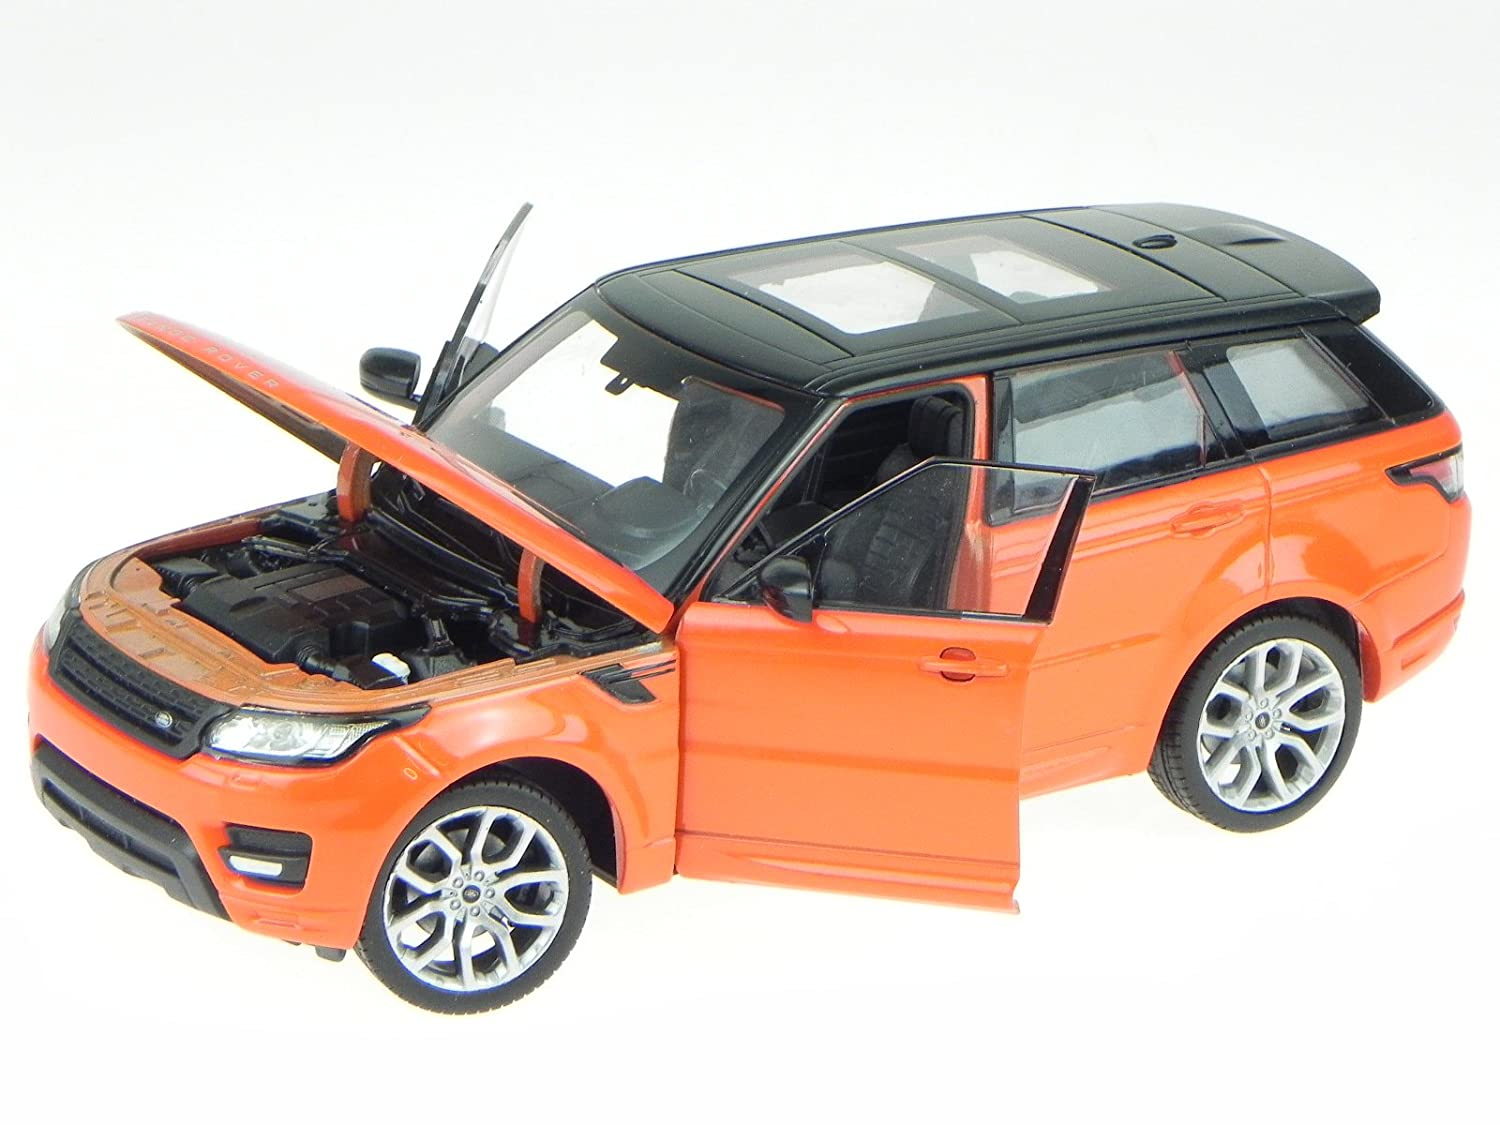 Land Rover Range Rover Sport 2015 orange//schwarz Modellauto 1:24 Welly